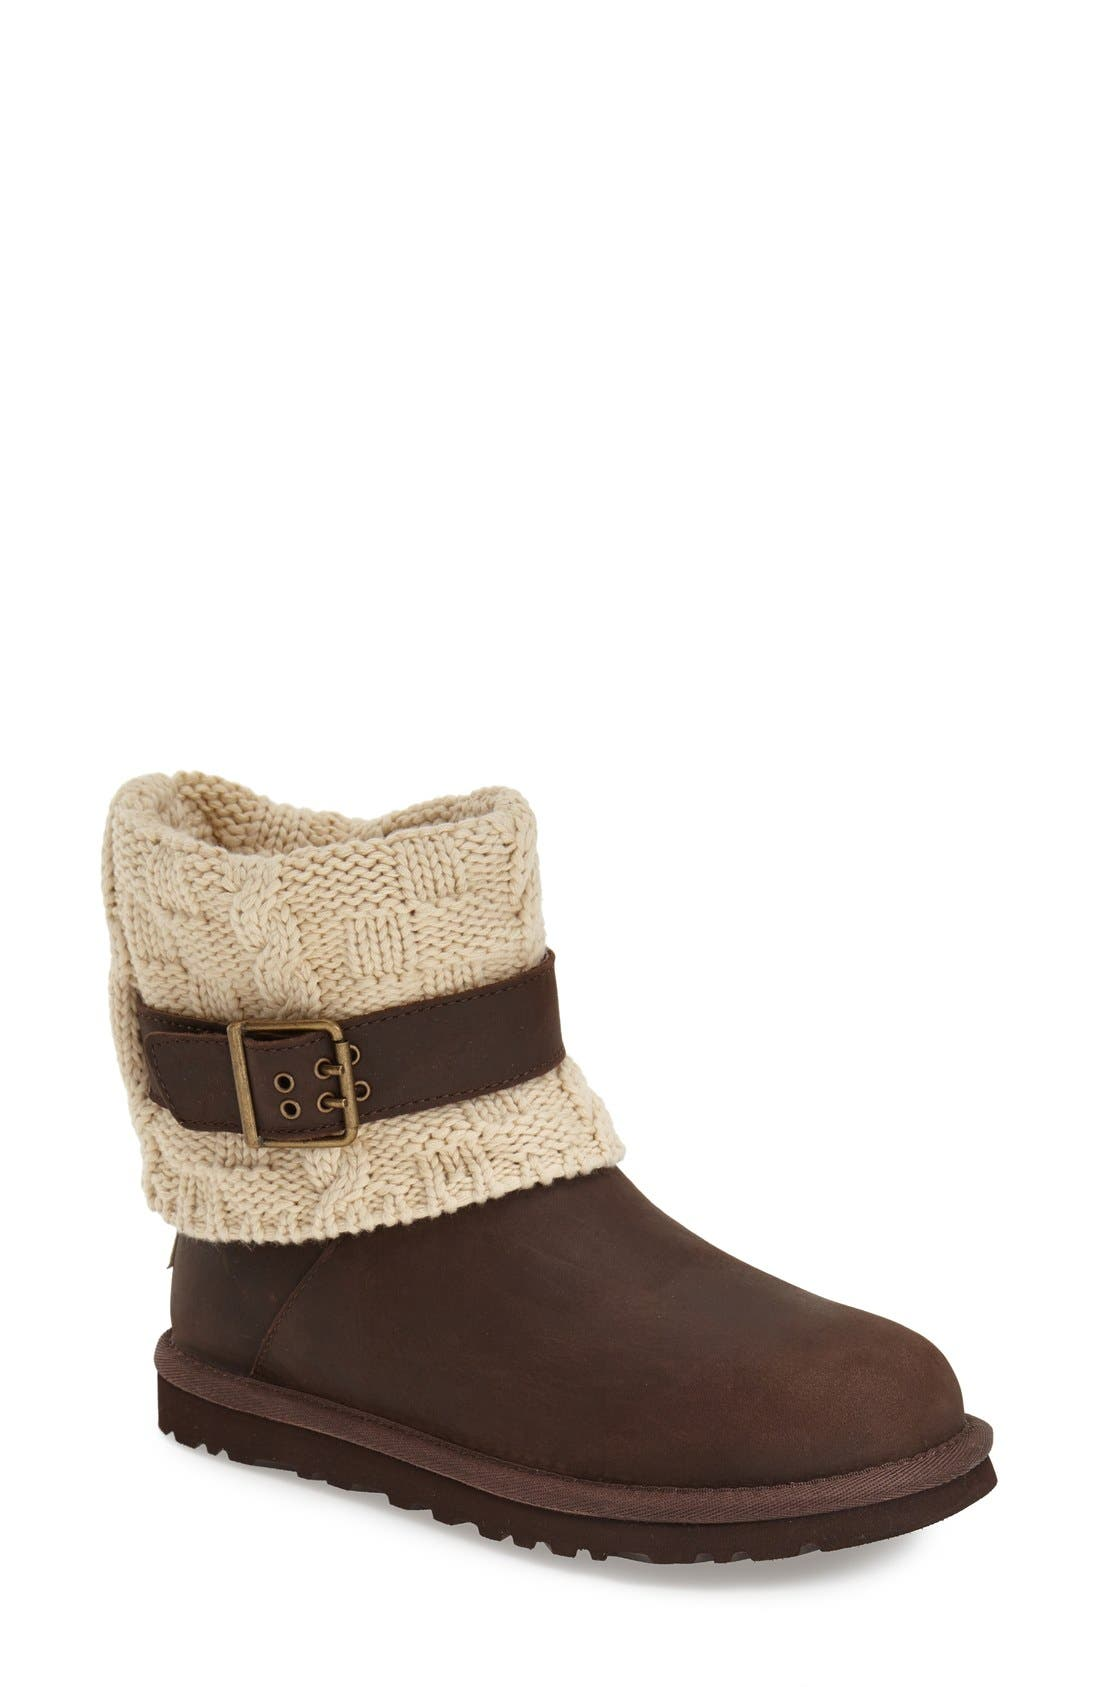 Main Image - UGG® 'Cassidee' Cable Knit Boot (Women)